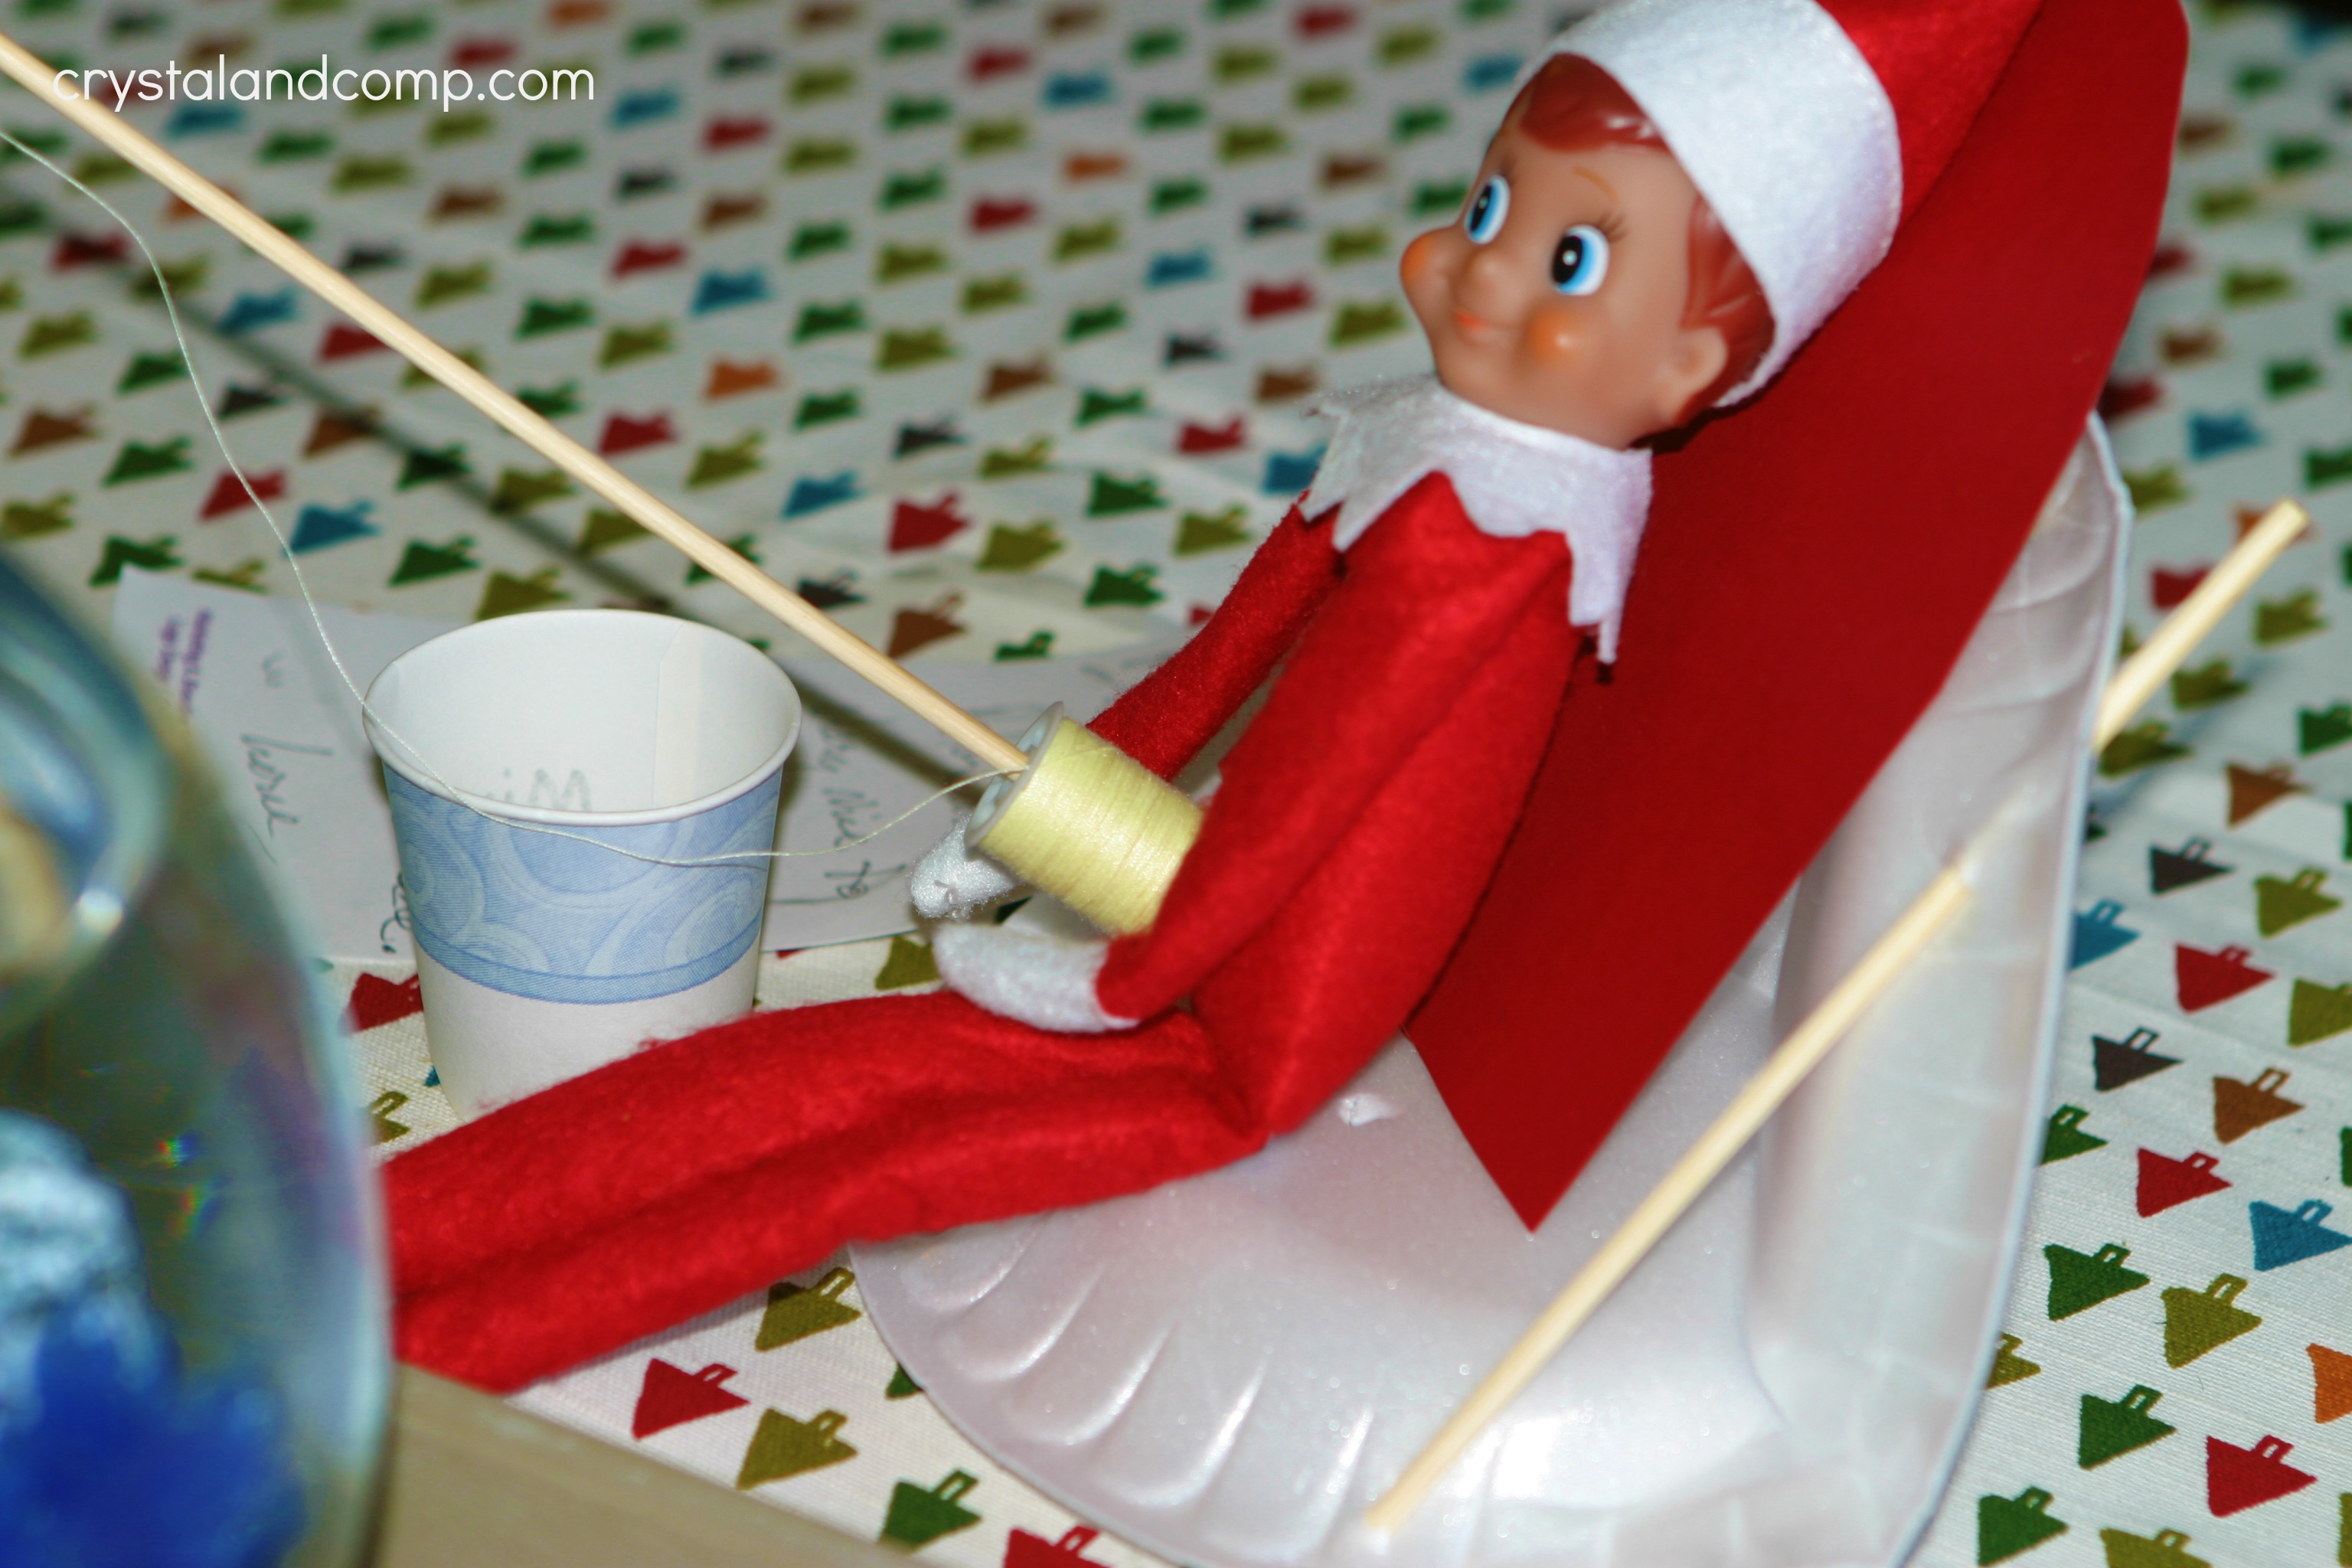 elf on the shelf gone fishing macgyver style crystalandcomp com